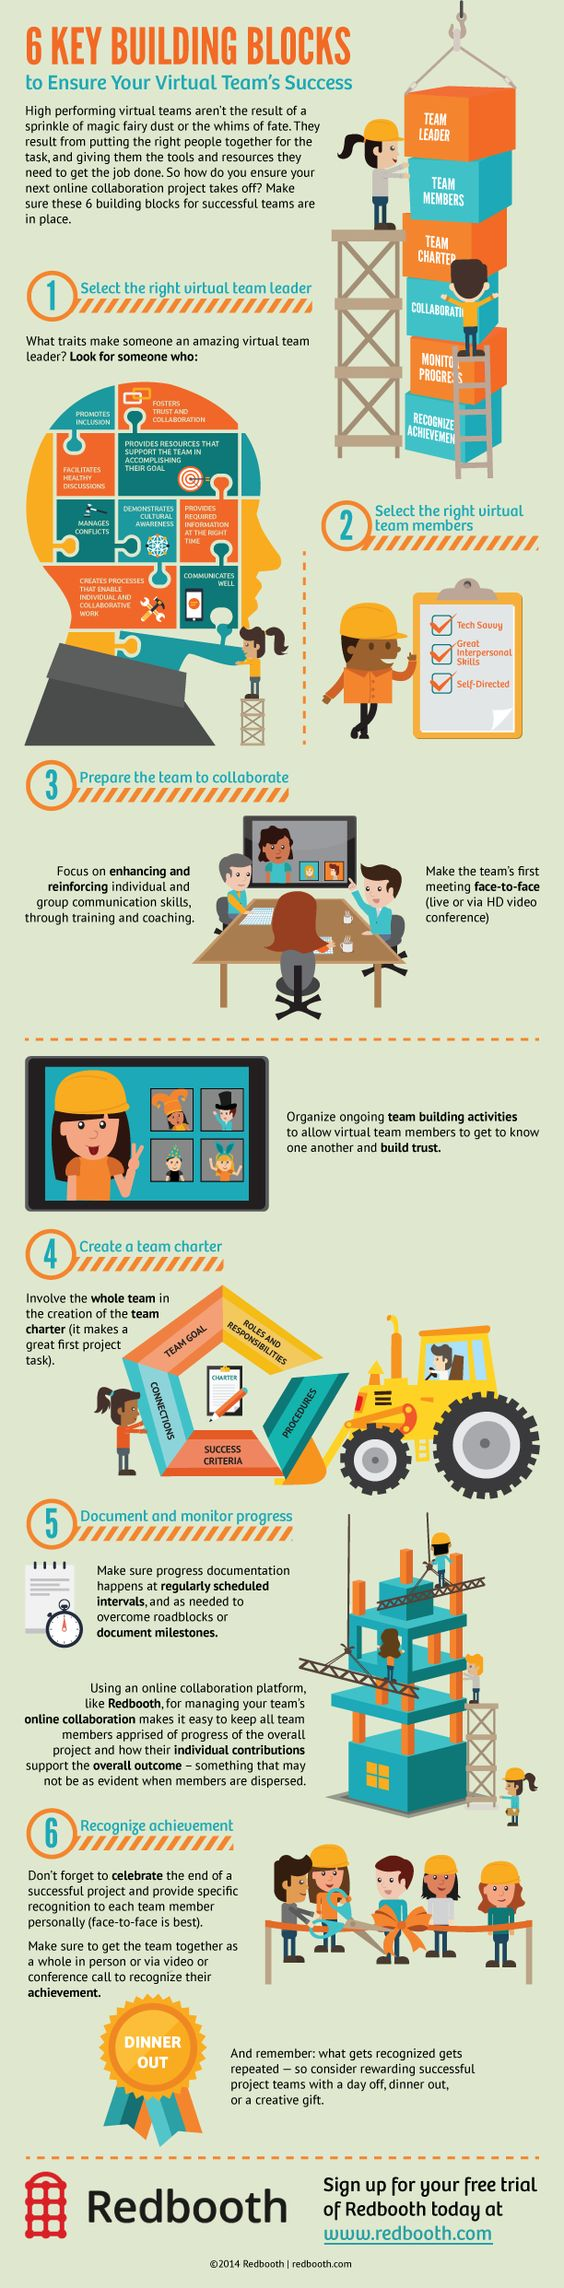 6 keys to your virtual teams success infographic tips for check out this infographic for our tips on how to ensure your next online collaboration project team takes off